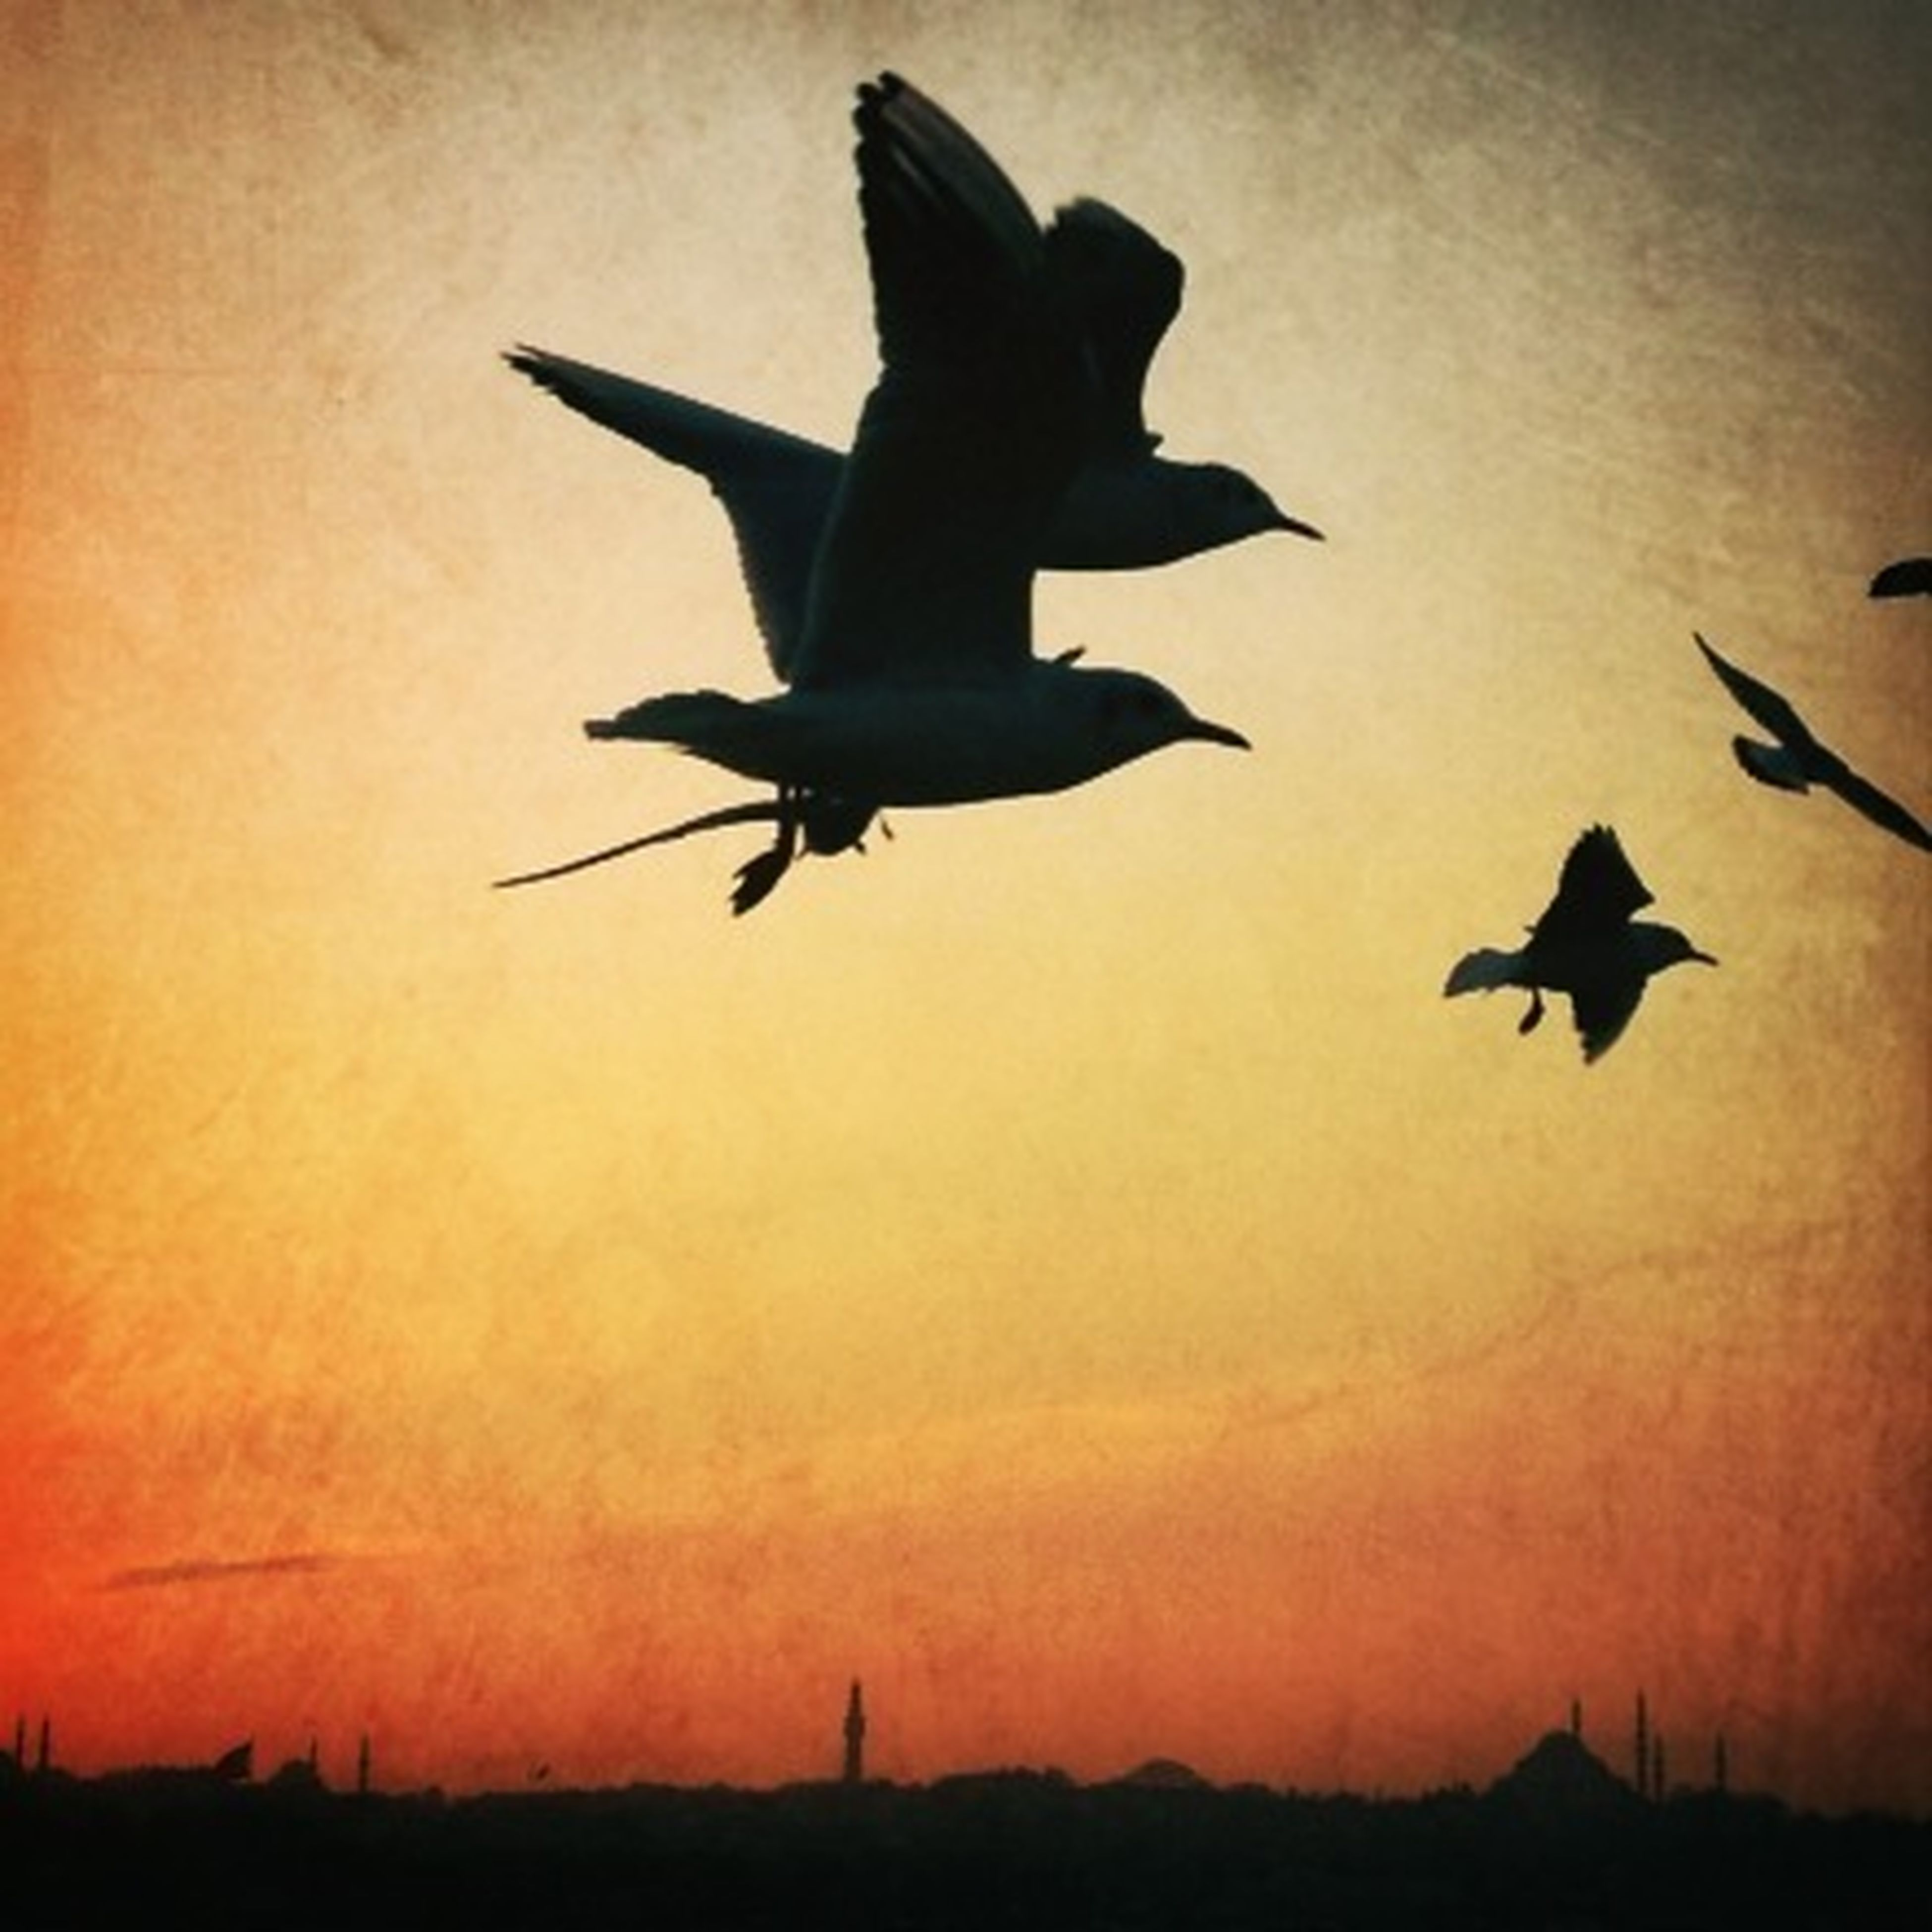 bird, flying, silhouette, animal themes, spread wings, sunset, animals in the wild, low angle view, wildlife, mid-air, sky, one animal, orange color, nature, beauty in nature, dusk, outdoors, full length, no people, outline